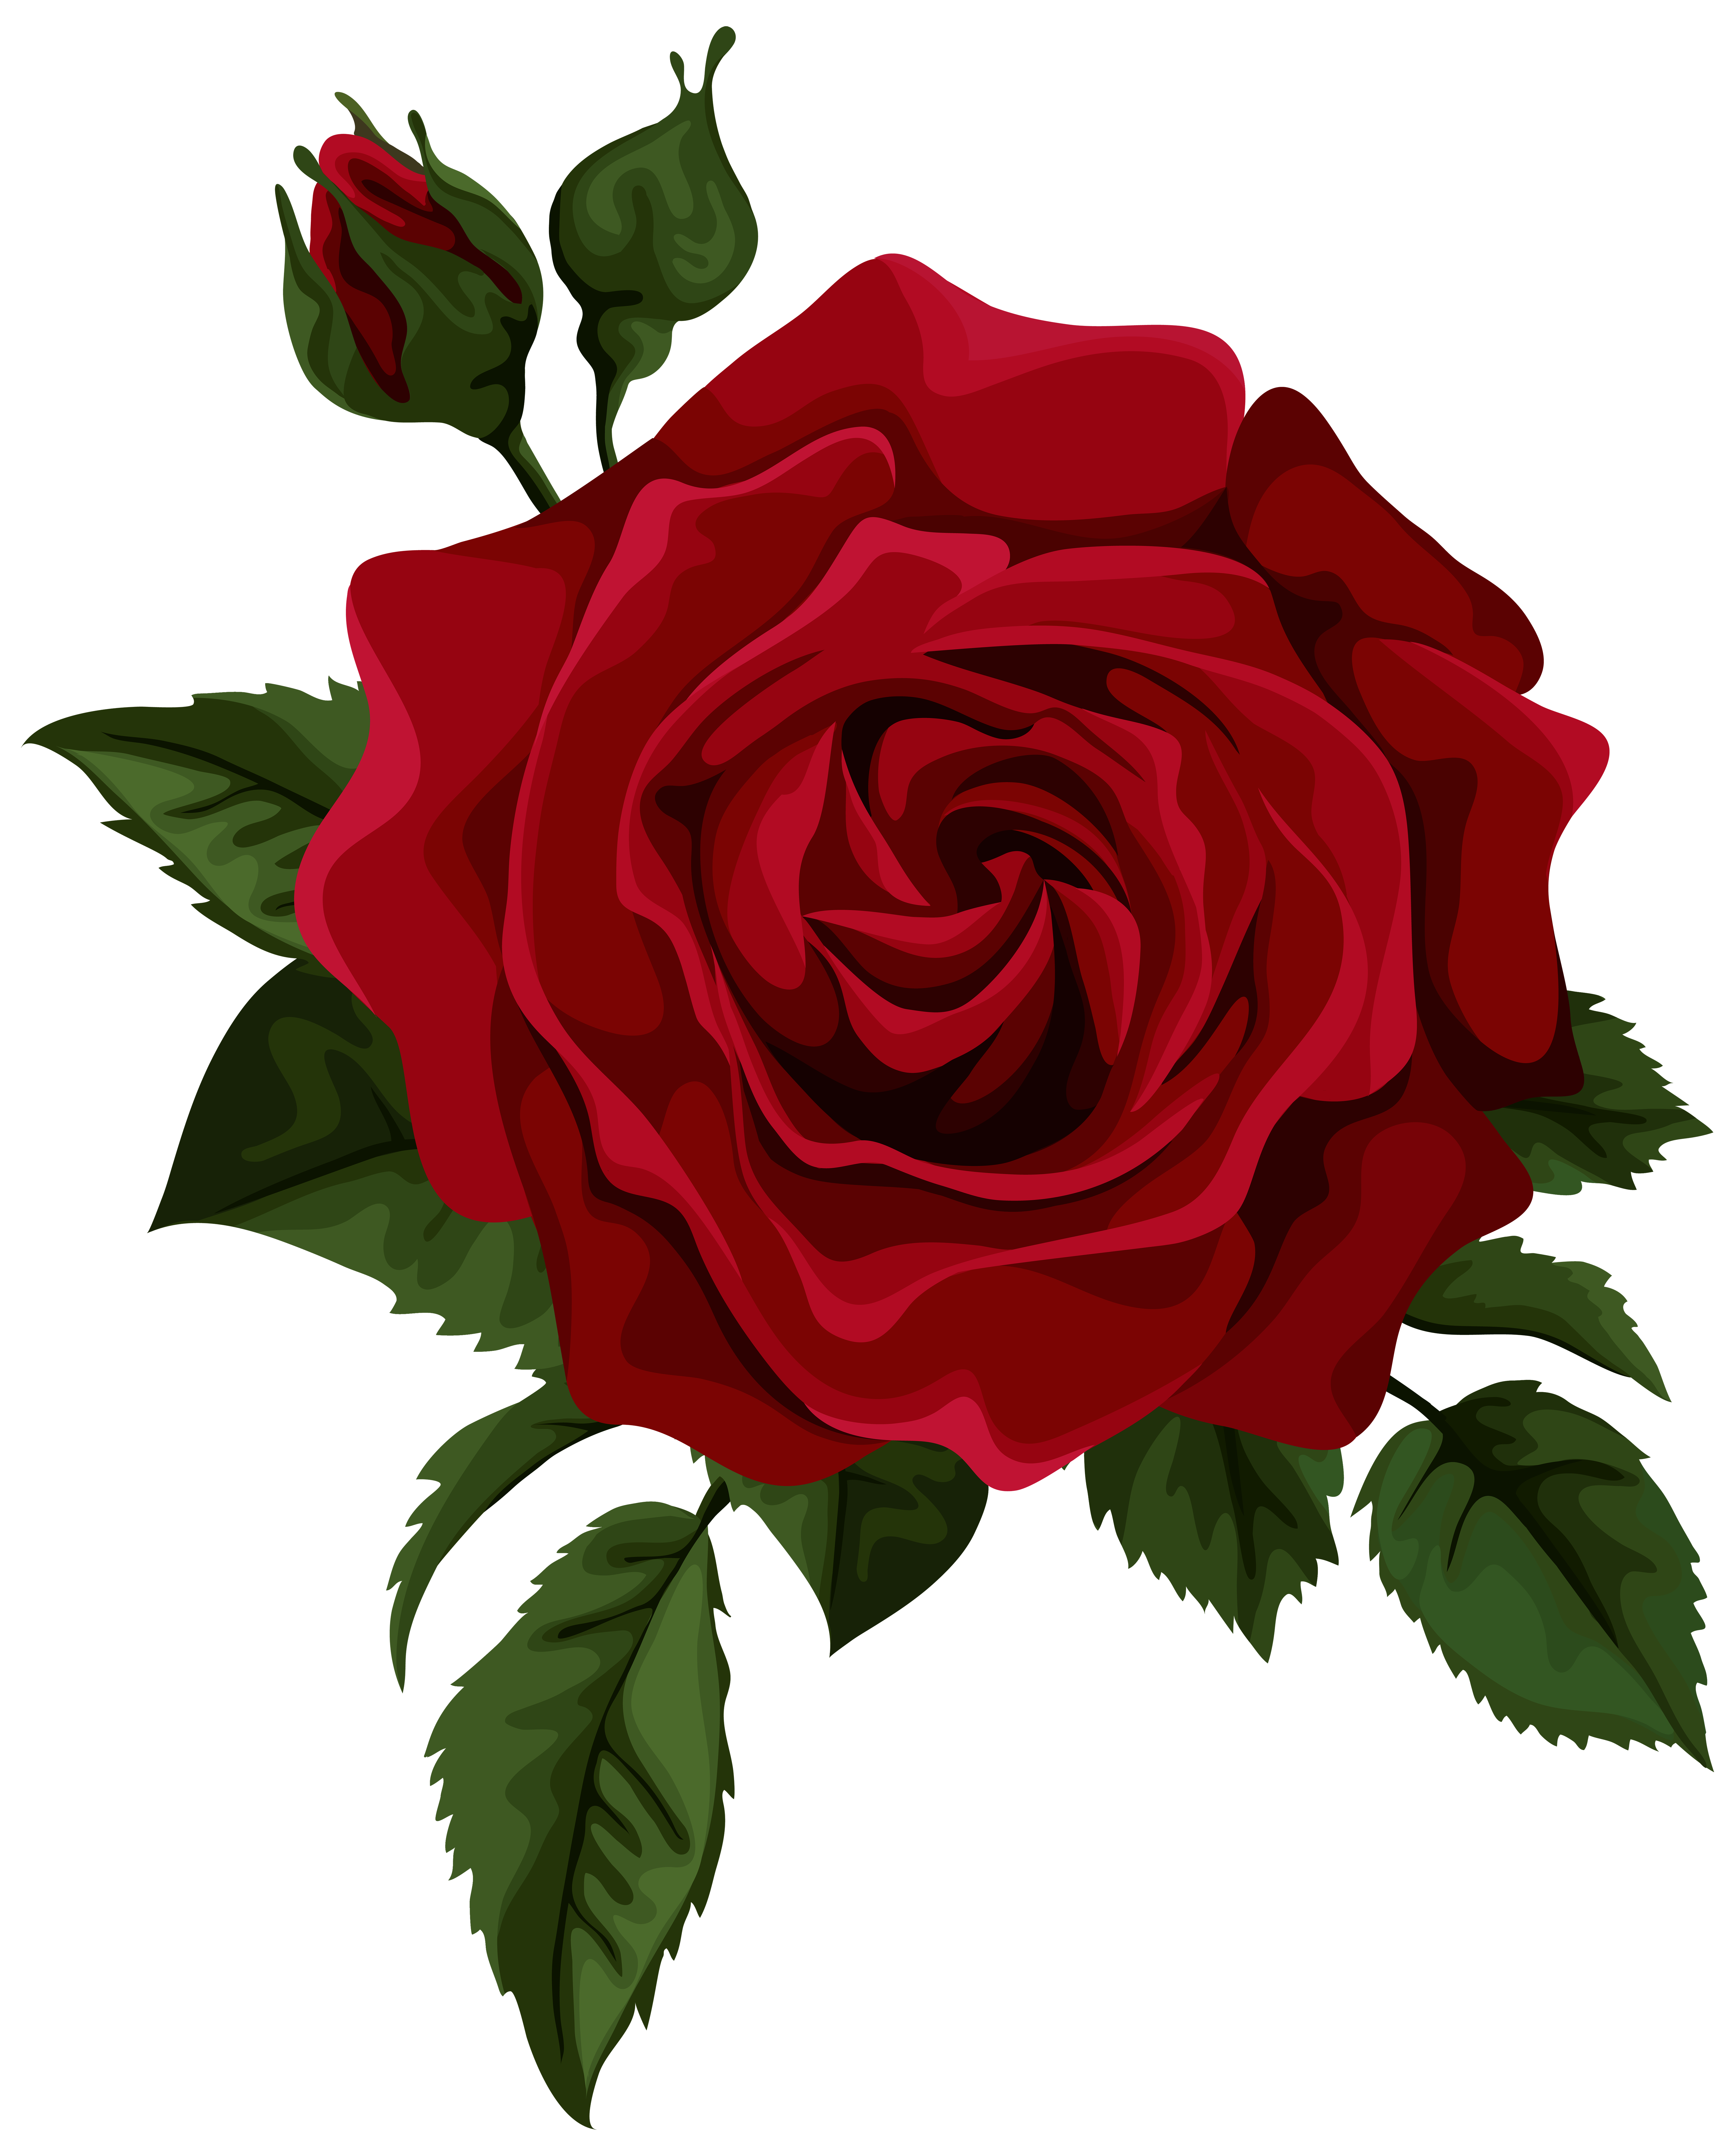 Rose art clipart clip art library stock Red Rose with Bud Transparent PNG Clip Art Picture ... clip art library stock